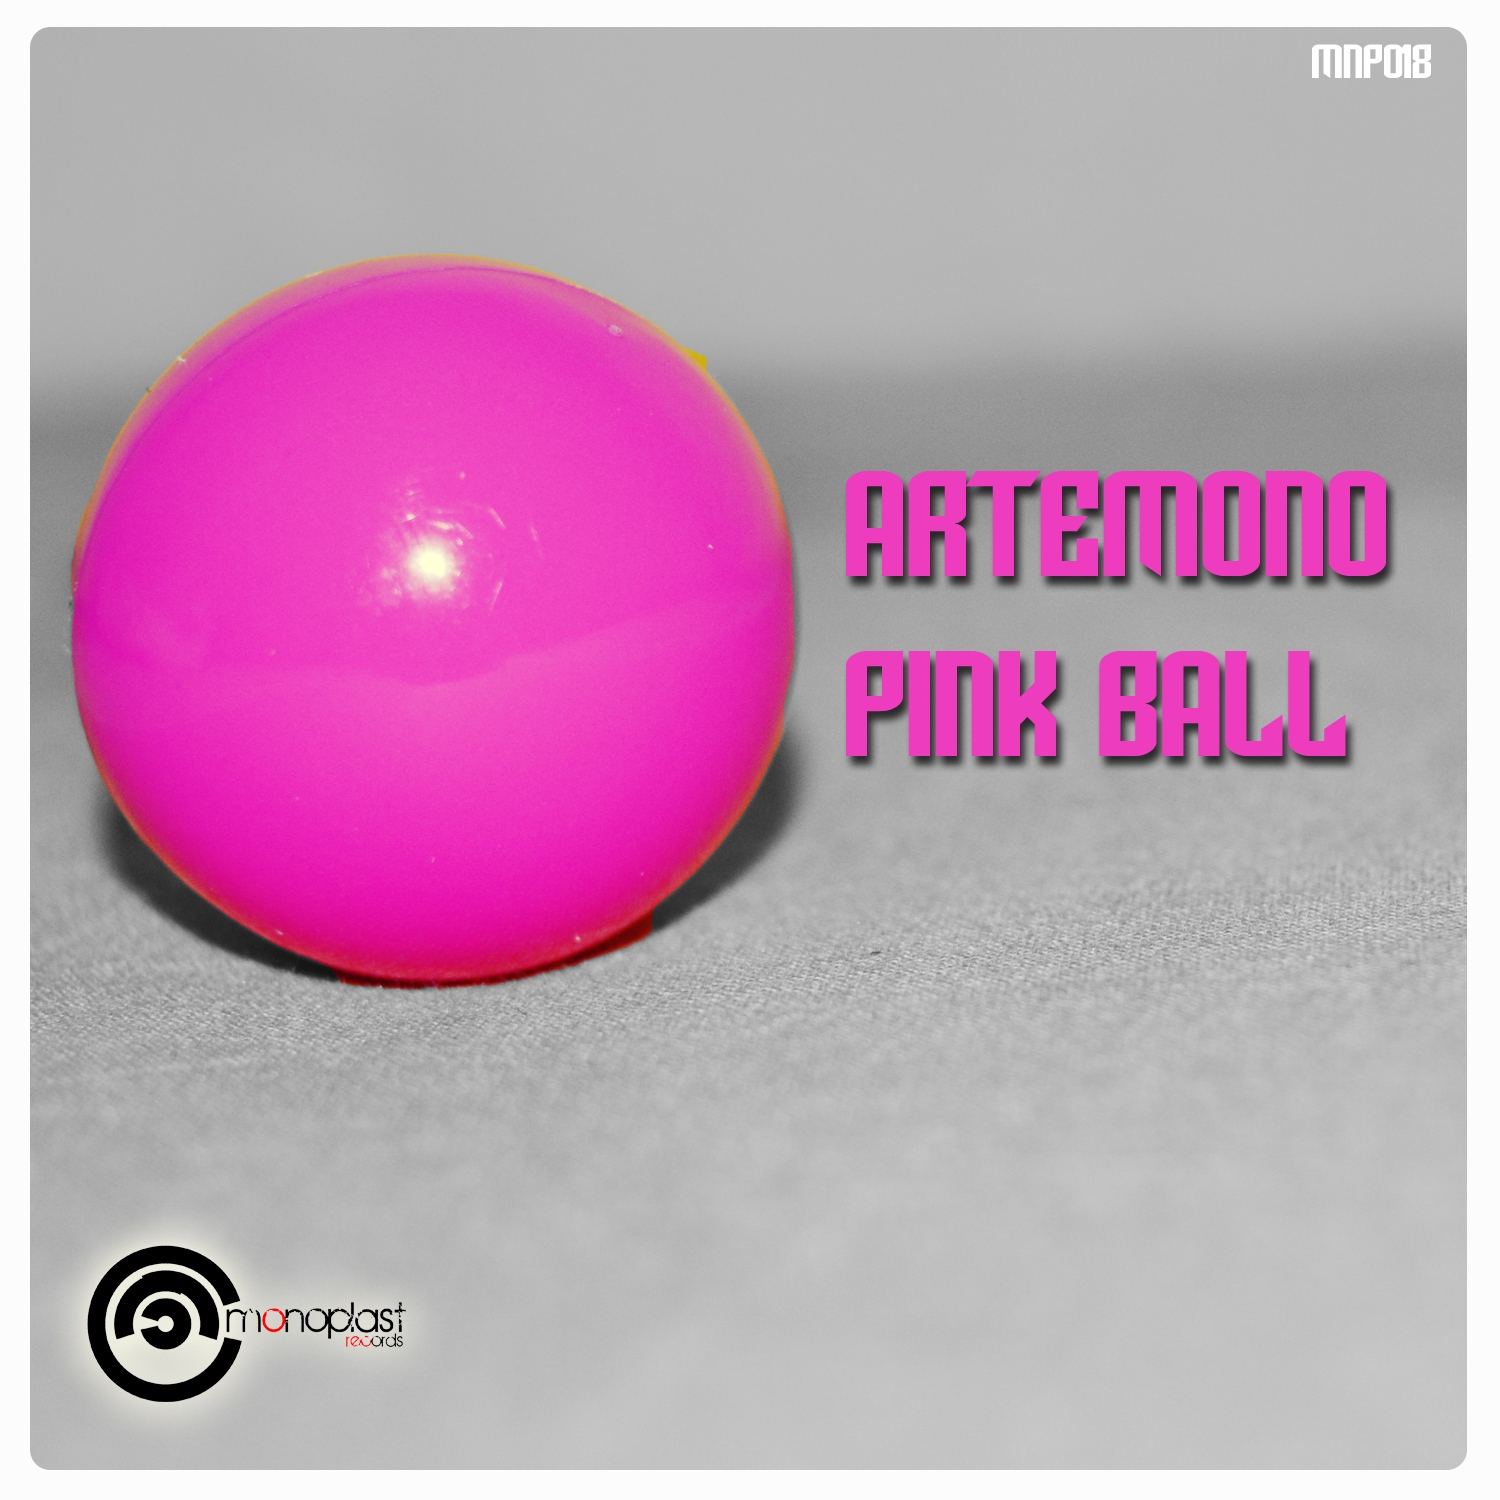 Artemono - Pink Ball (Original mix)